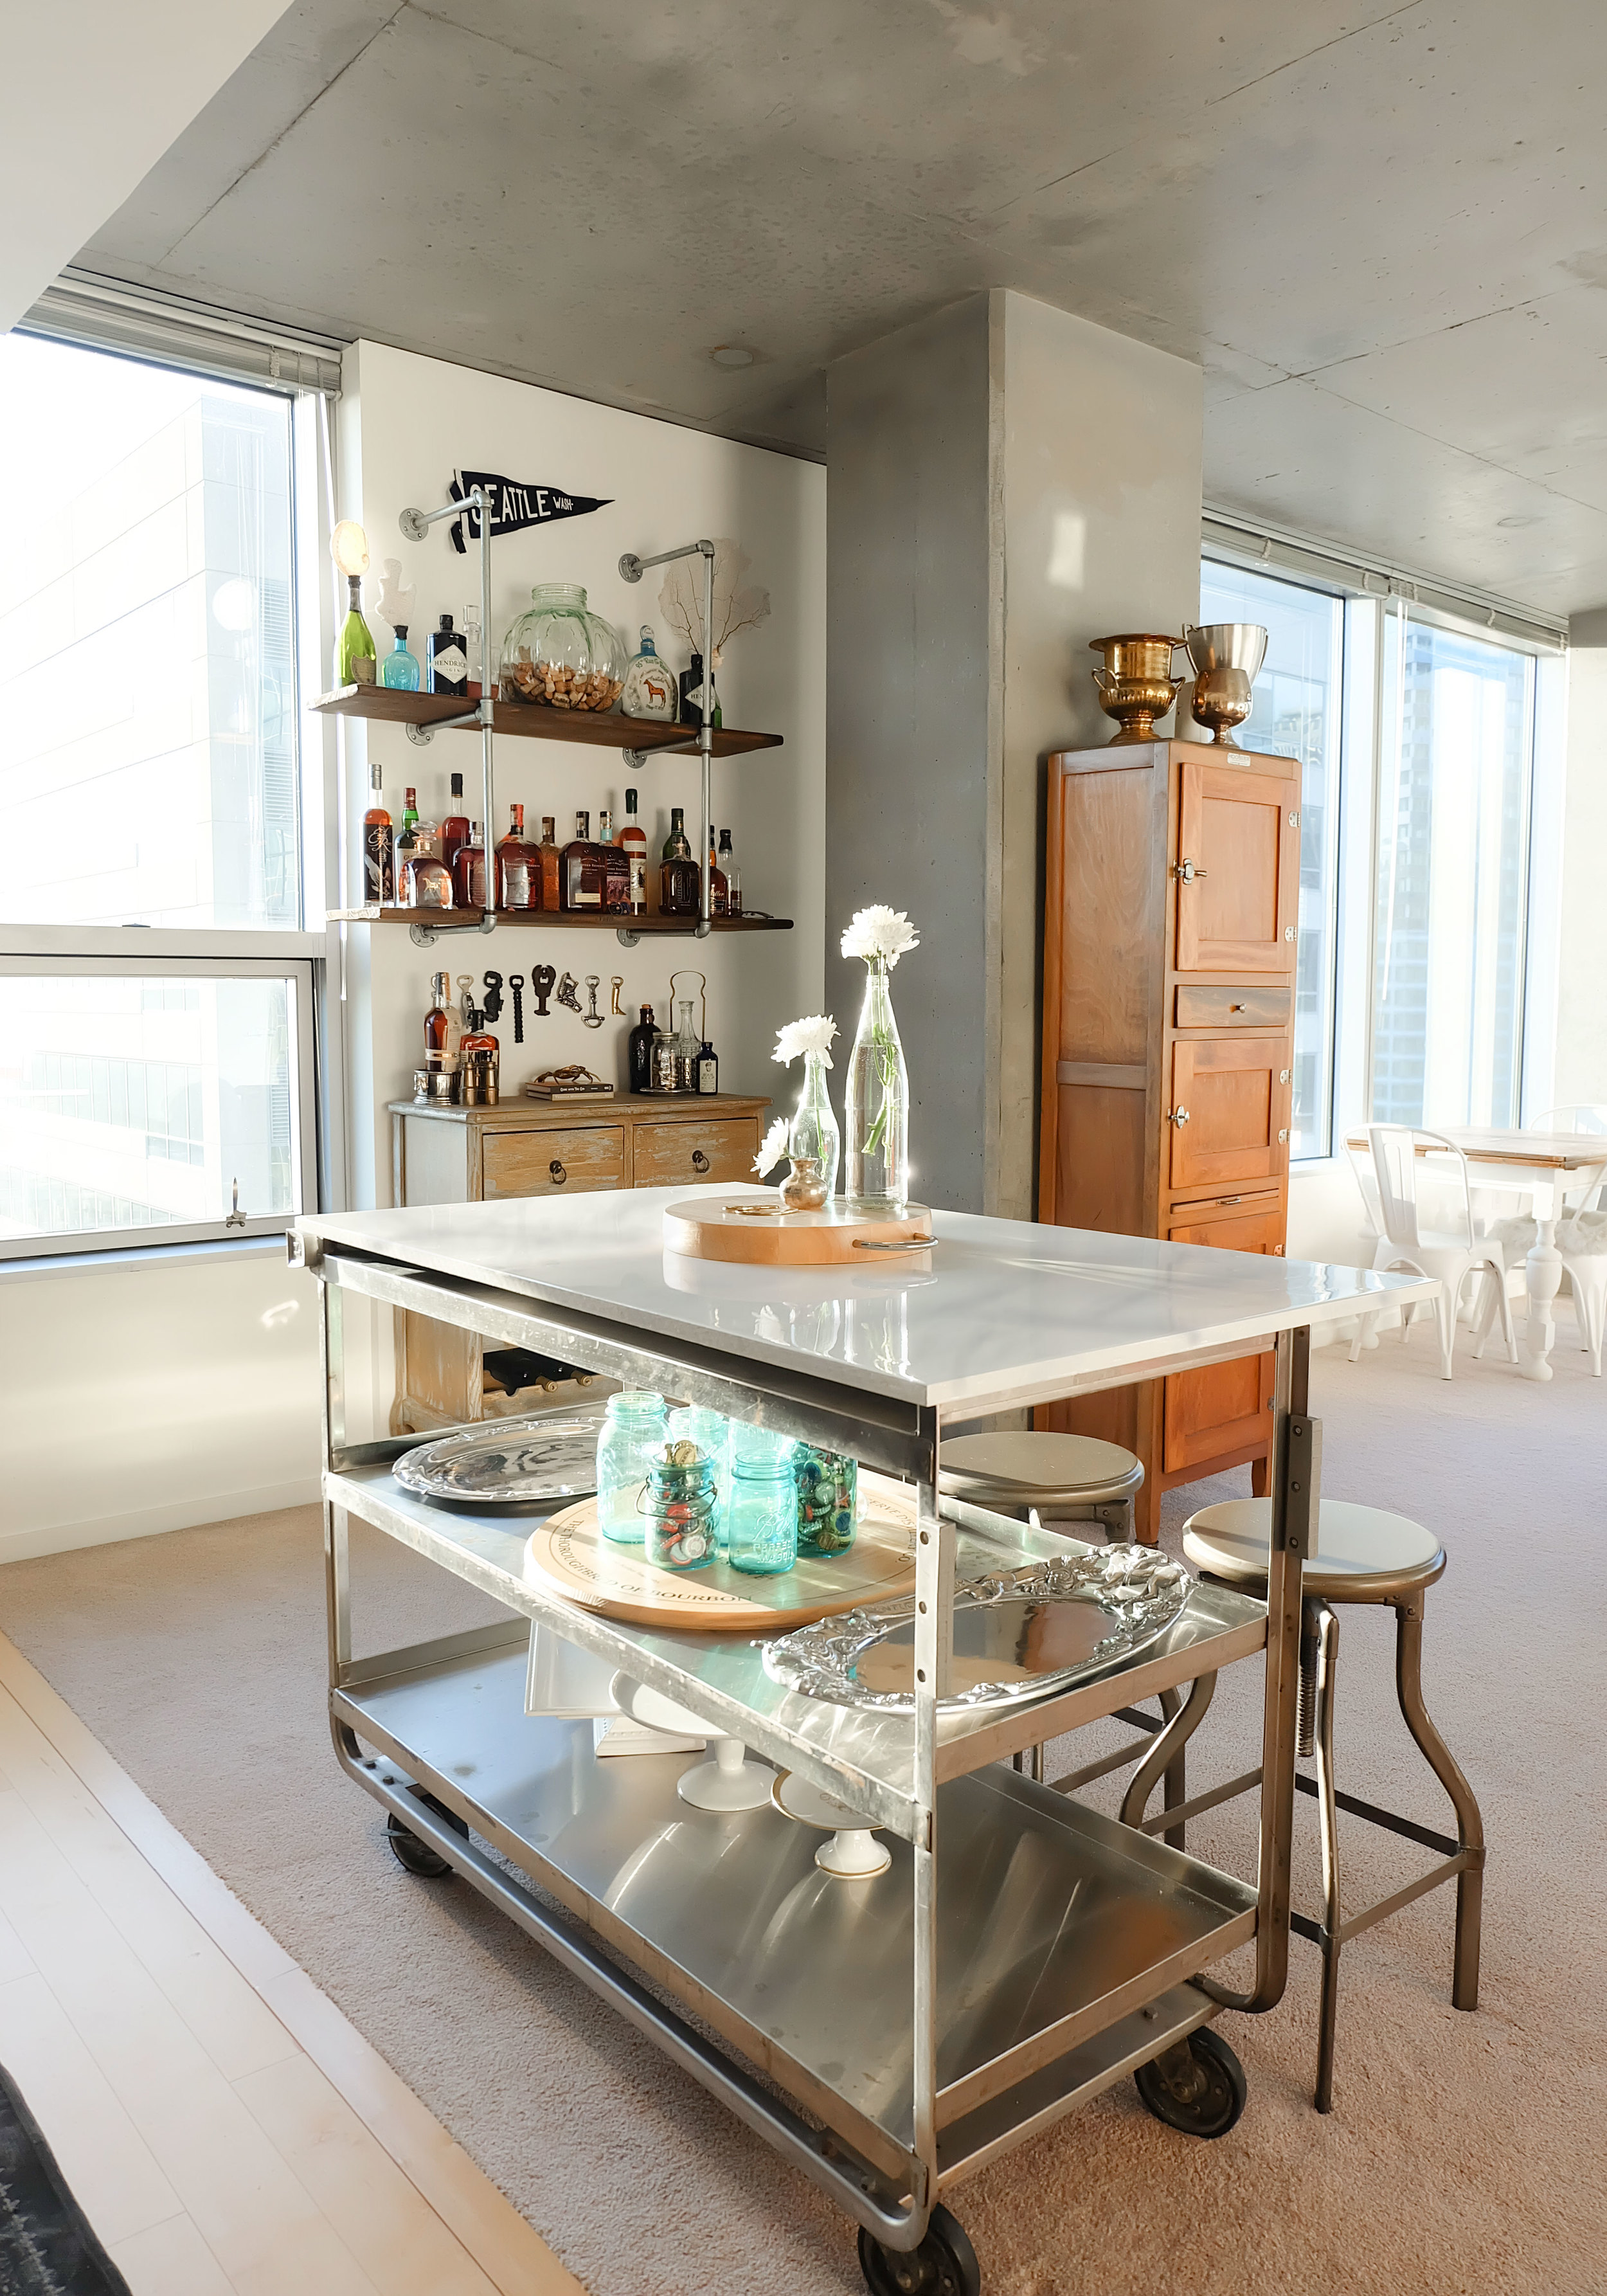 Diy For Less Faux Marble Countertops Me And Mr Jones